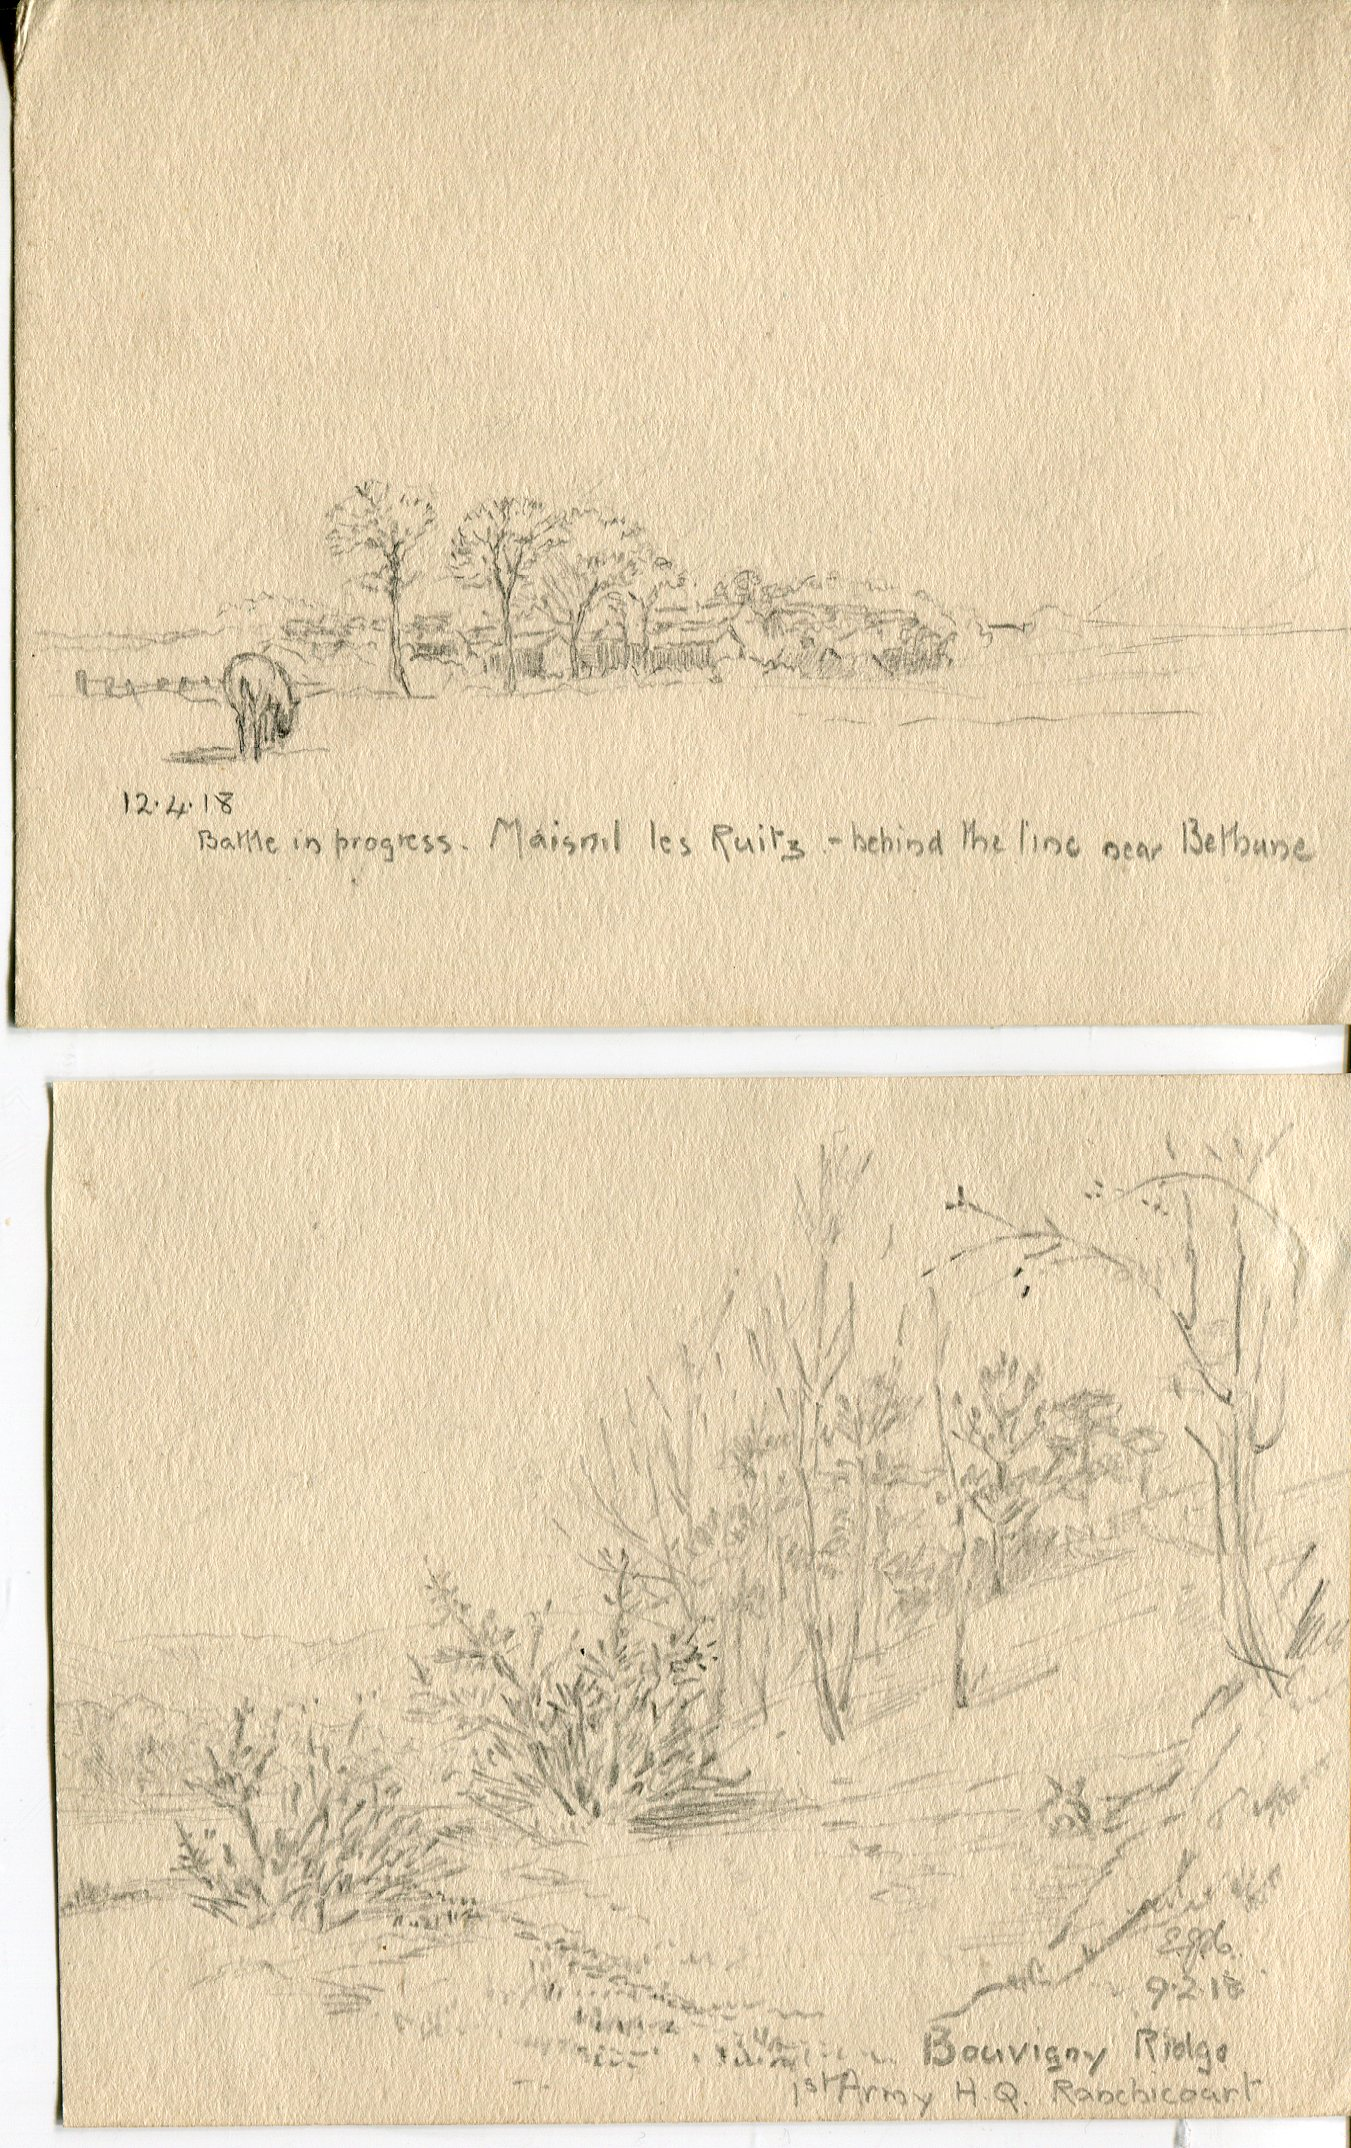 Lot 25 - Rare Great War Art Sketches A collection of SIX hand drawn sketches, done during the Great War by